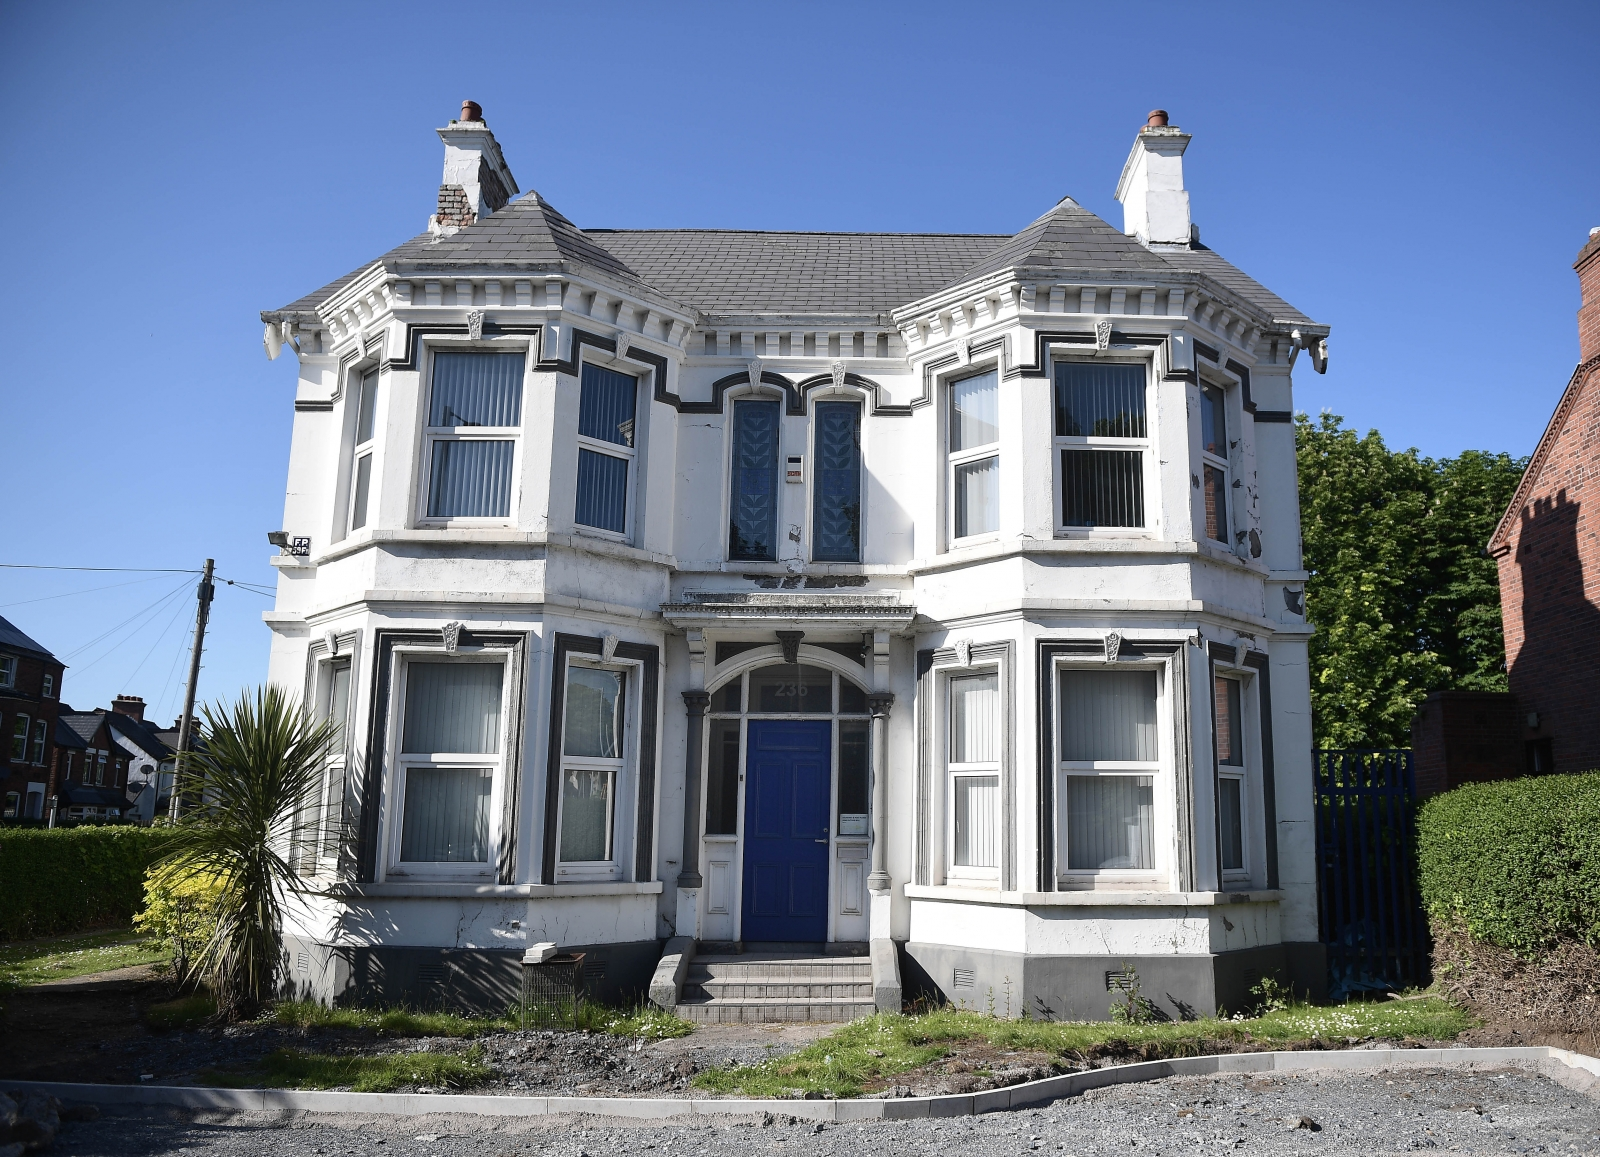 Three senior care staff at Kincora were jailed in 1981 for abusing 11 boys